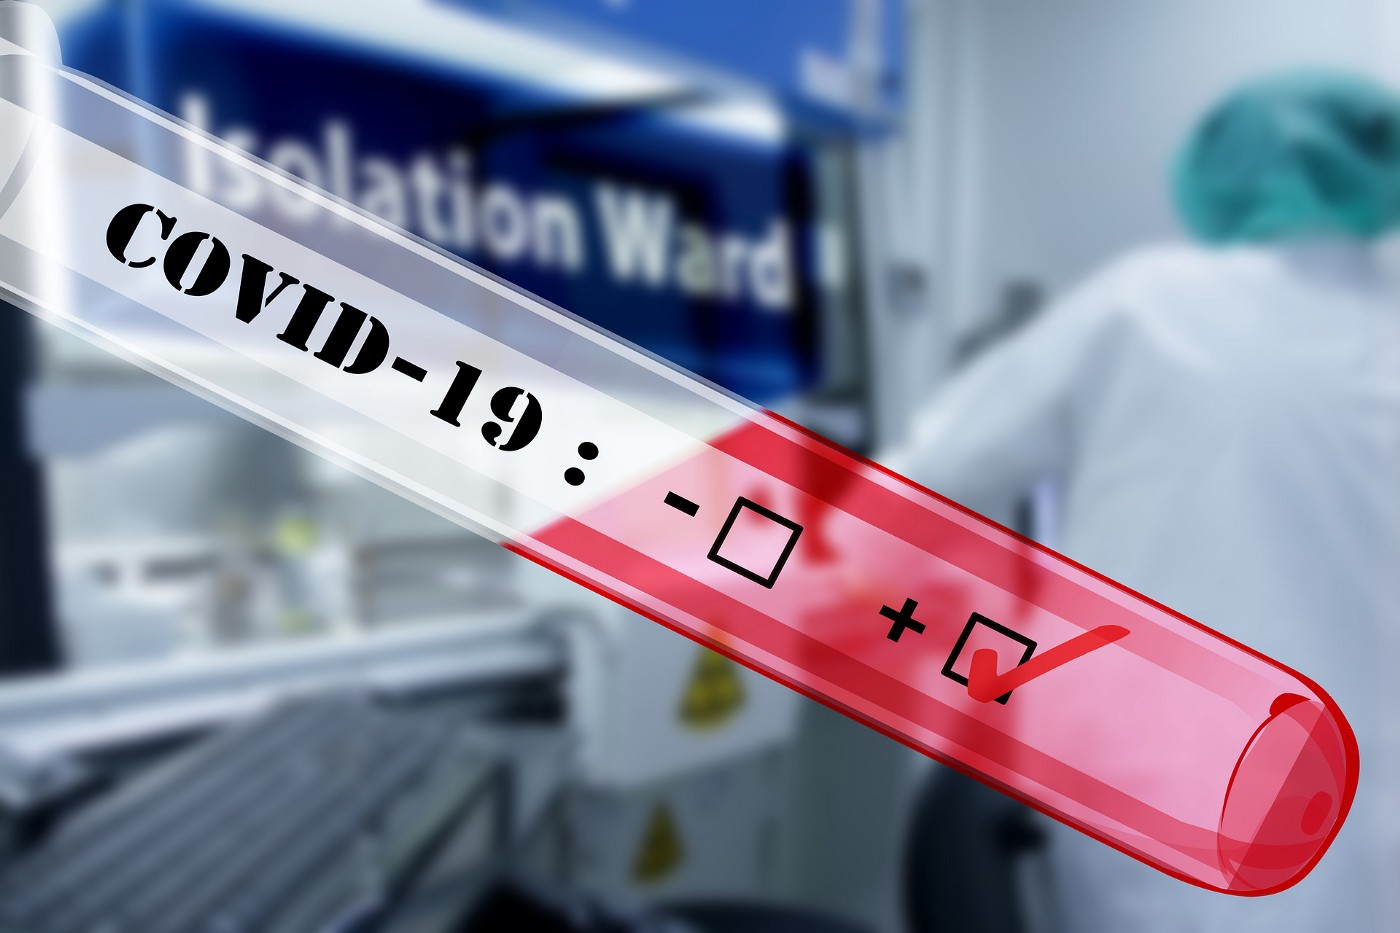 Picture of a test tube with a blood sample in it and the words COVID-19 written on the tube. The box next to the plus sign is checked, while the box next to the minus sign is blank. In the background, a healthcare provider can be seen next to the Isolation Ward sign.